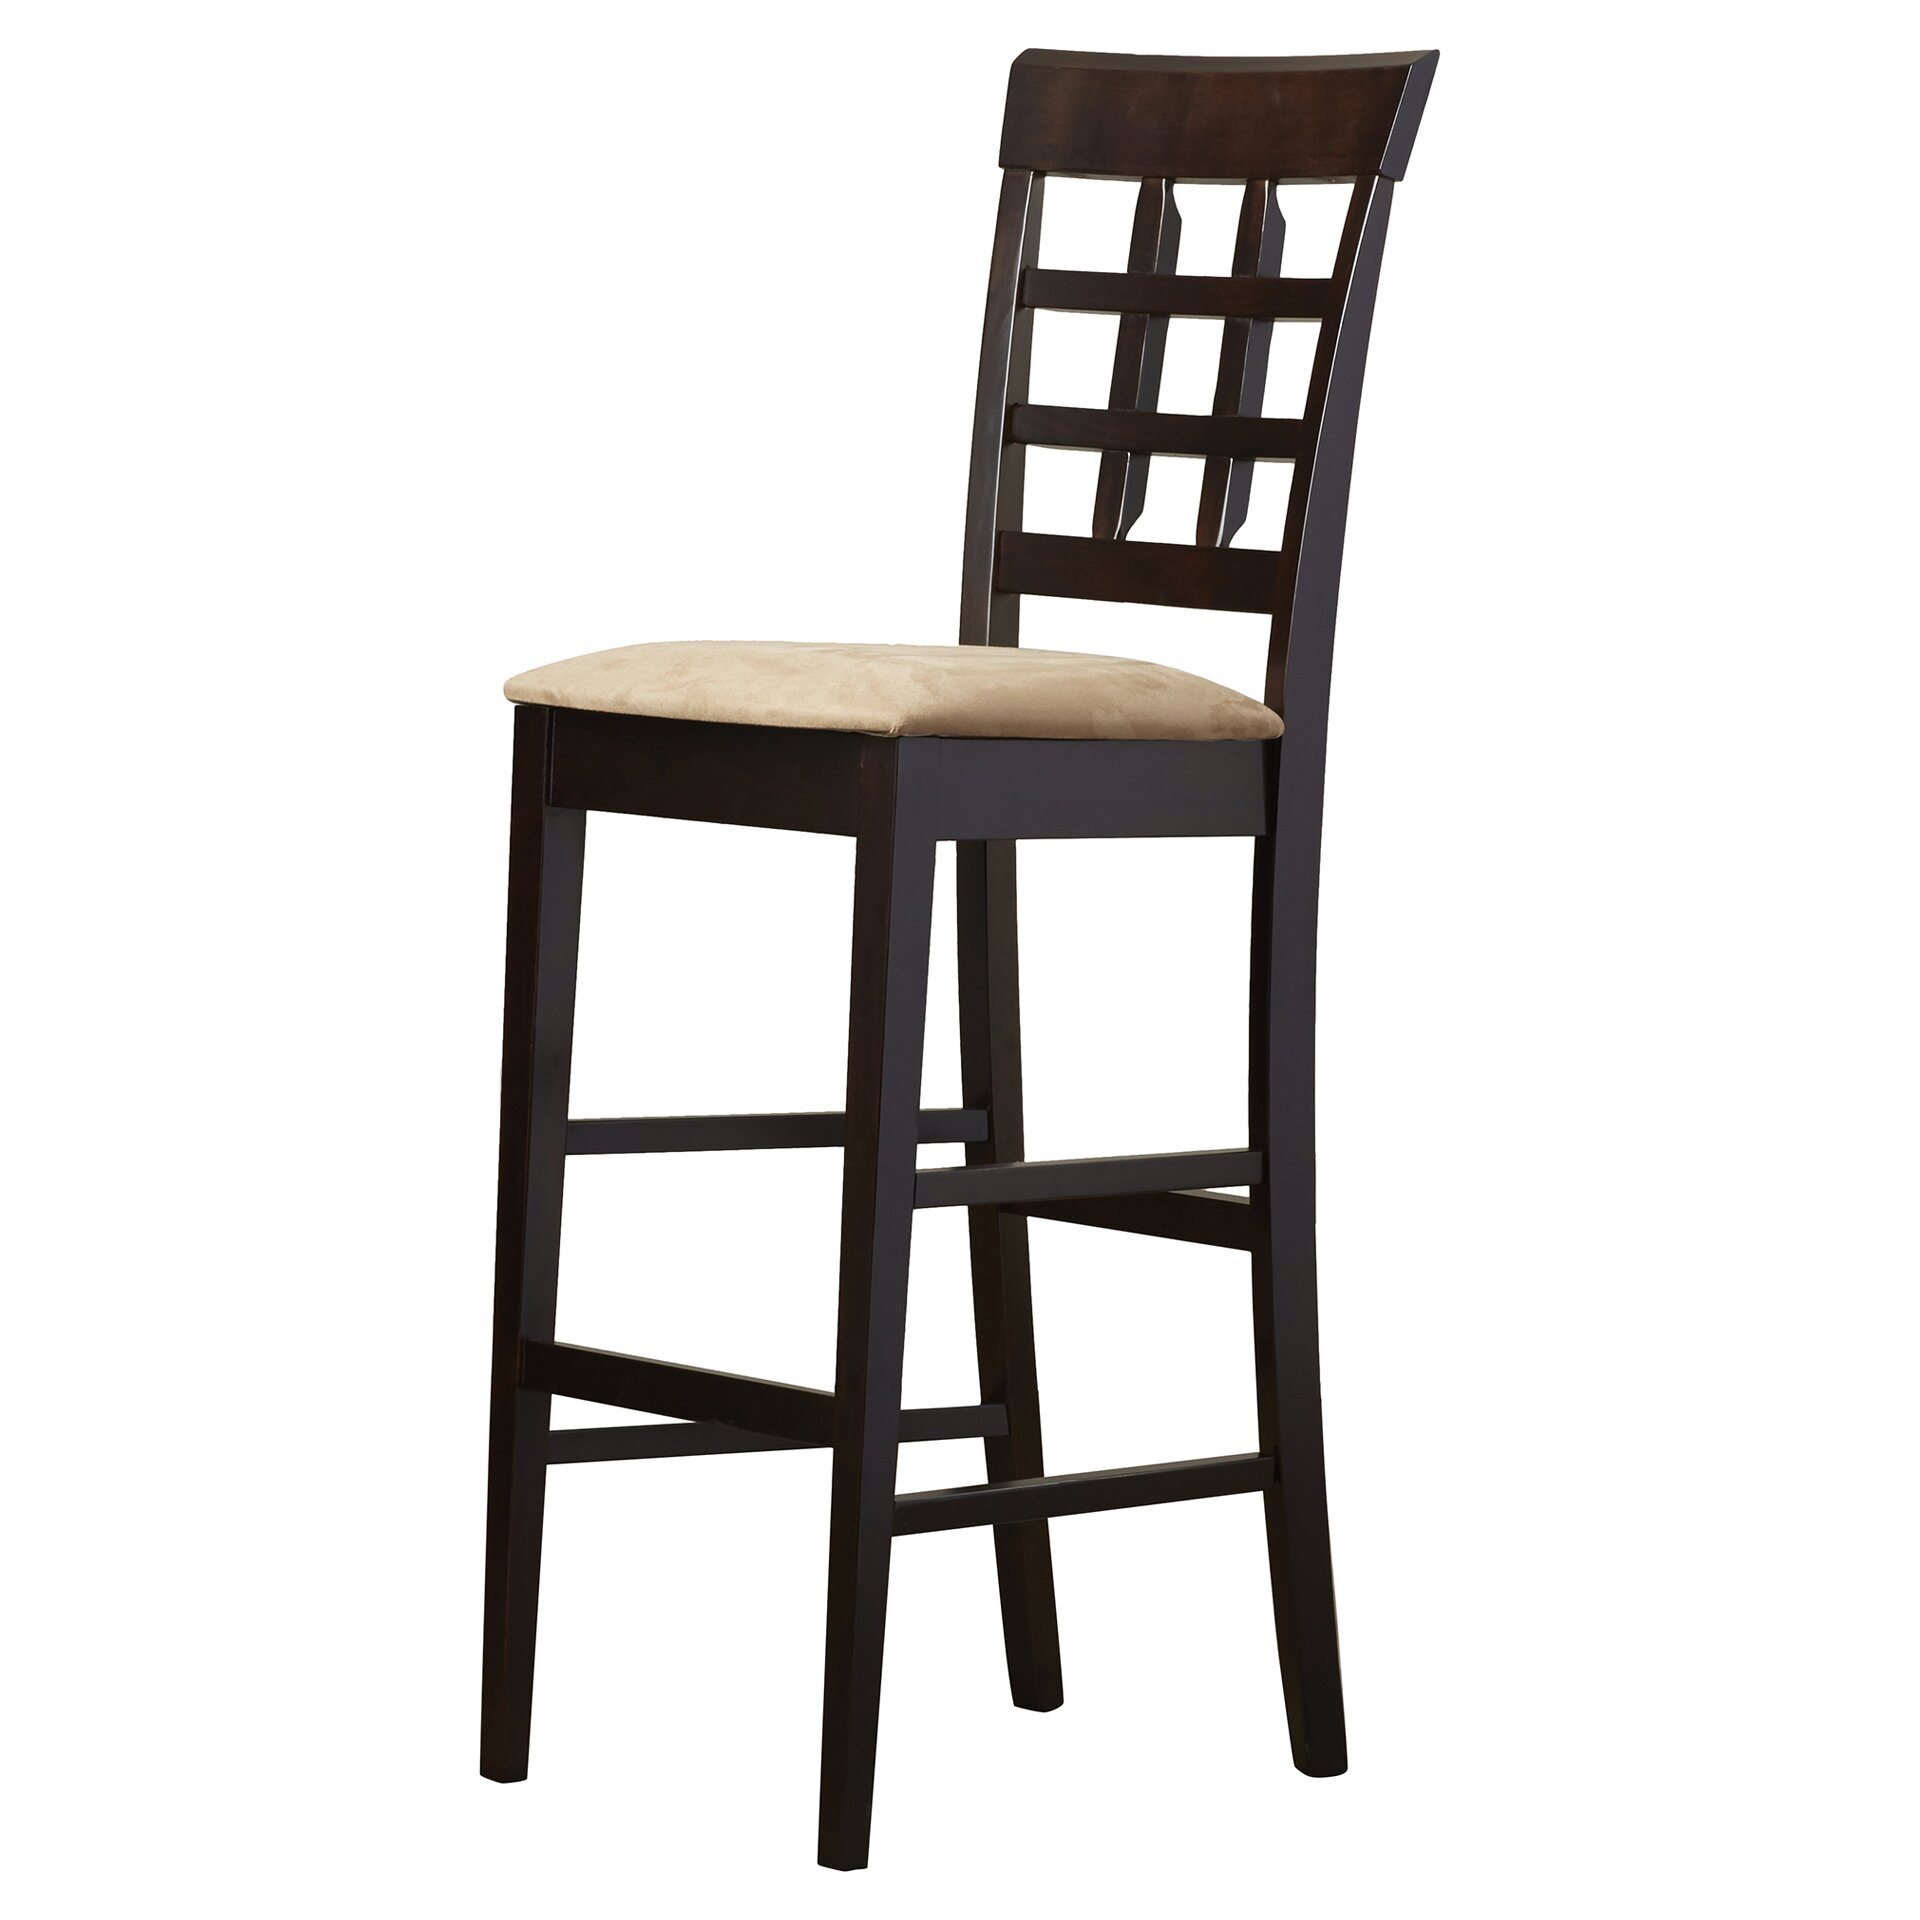 Andover Mills Winslow 31quot Bar Stool amp Reviews Wayfair : Winslow 30 Bar Stool with Cushion ANDO2152 from www.wayfair.com size 1920 x 1920 jpeg 176kB